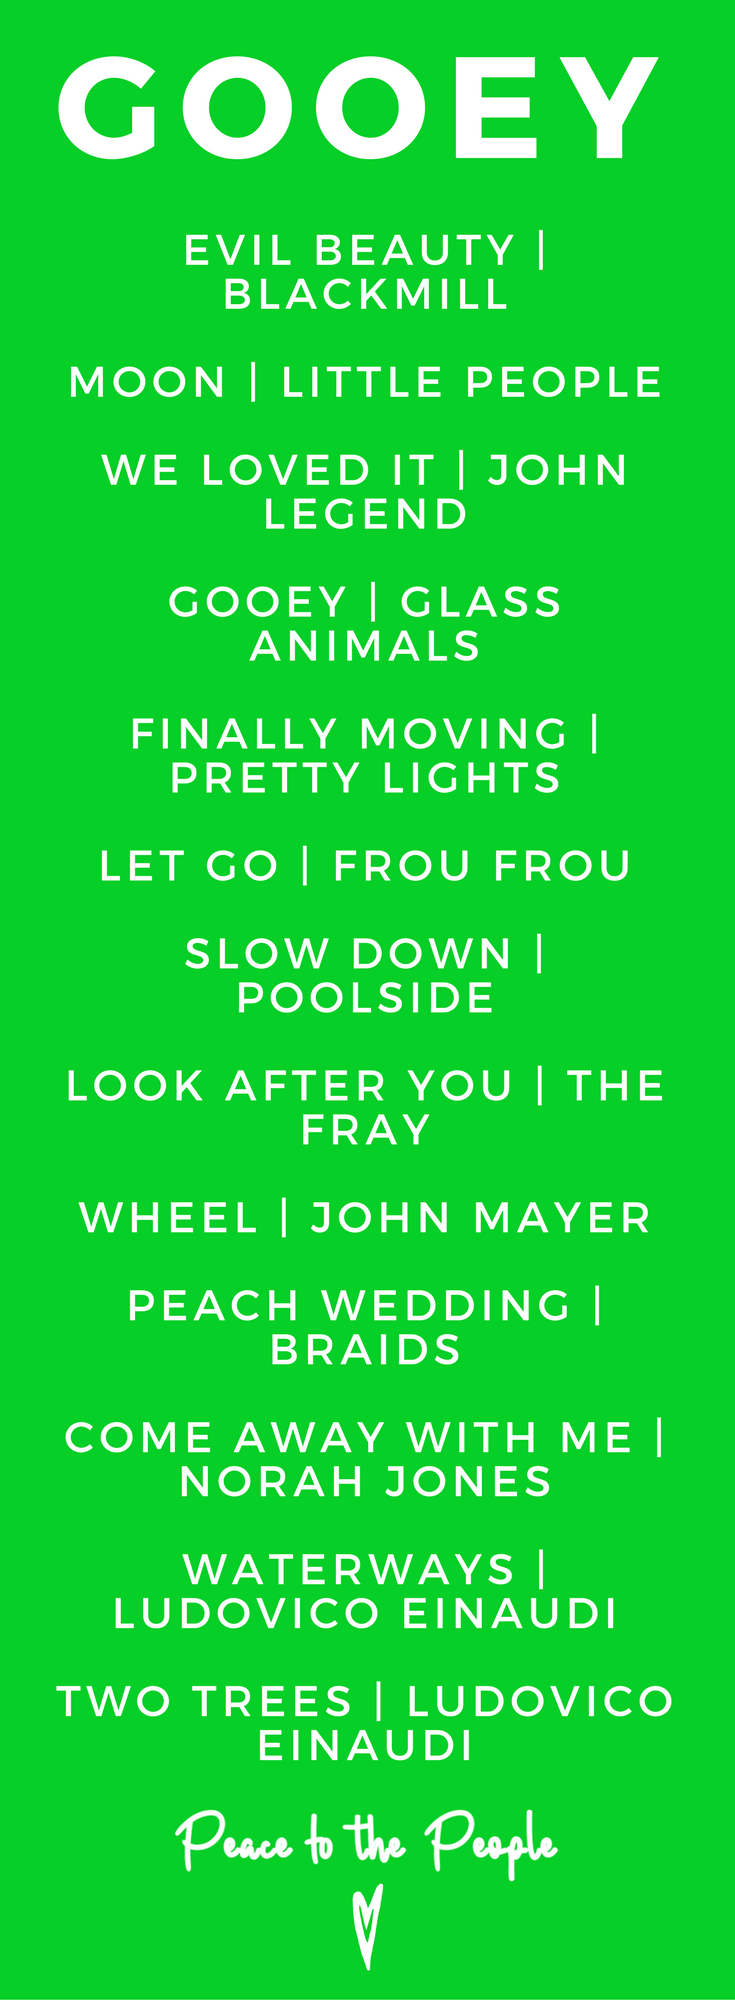 Gooey Glass Animals Yoga Playlist Peaceful Beauty Music Fitness.png